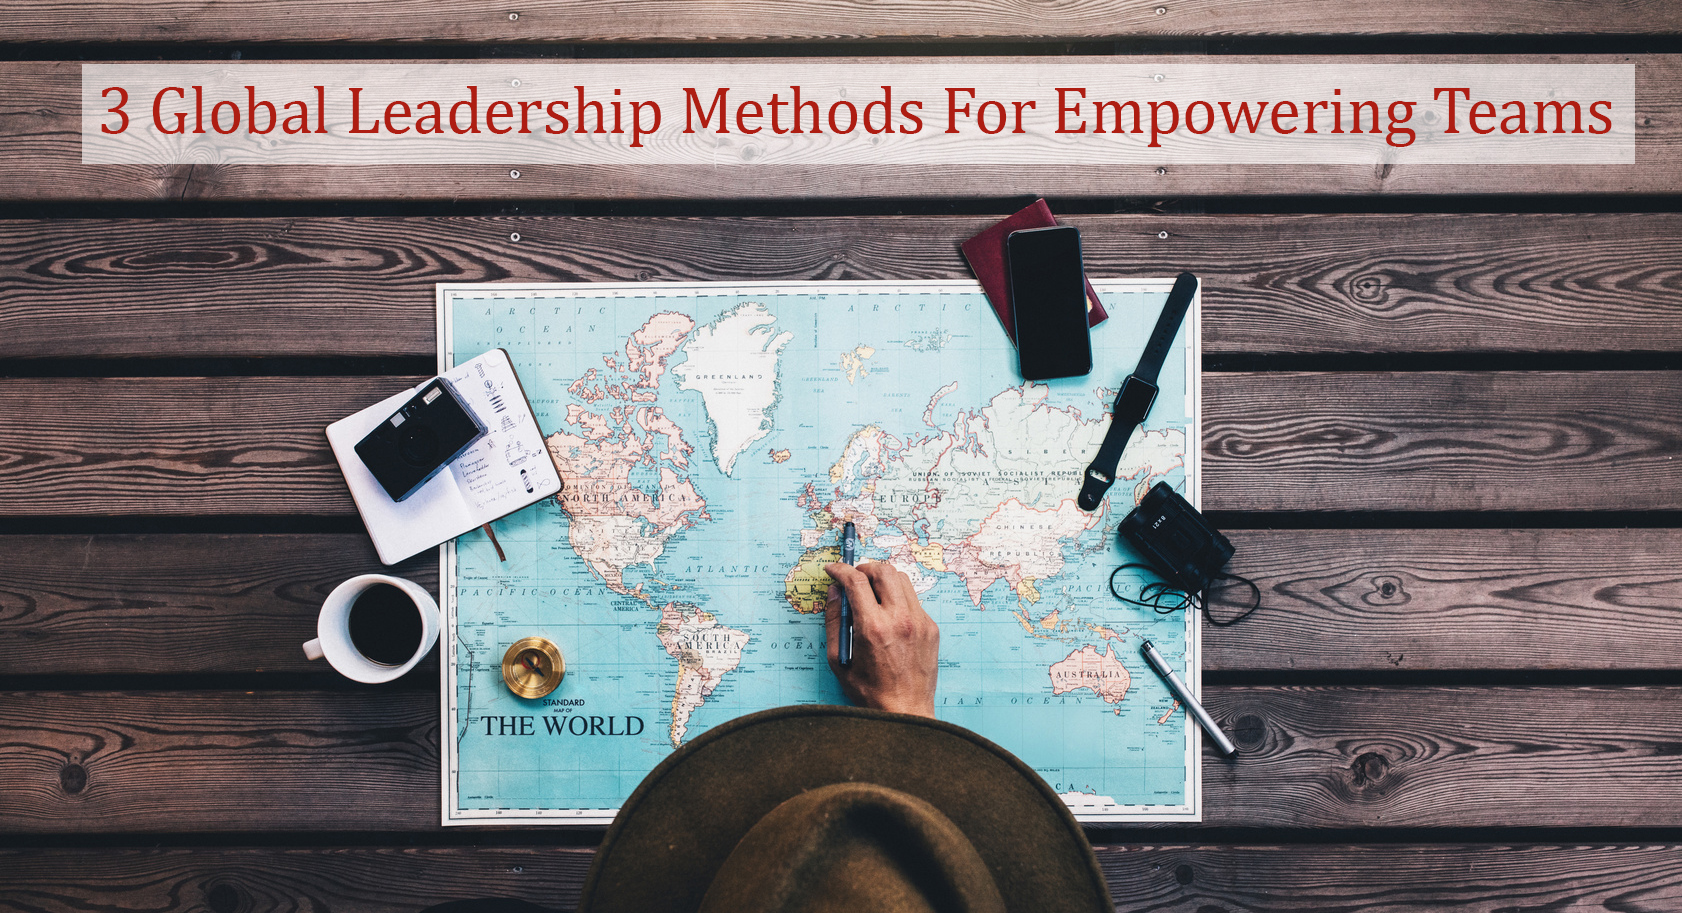 3 Global Leadership Methods For Empowering Teams